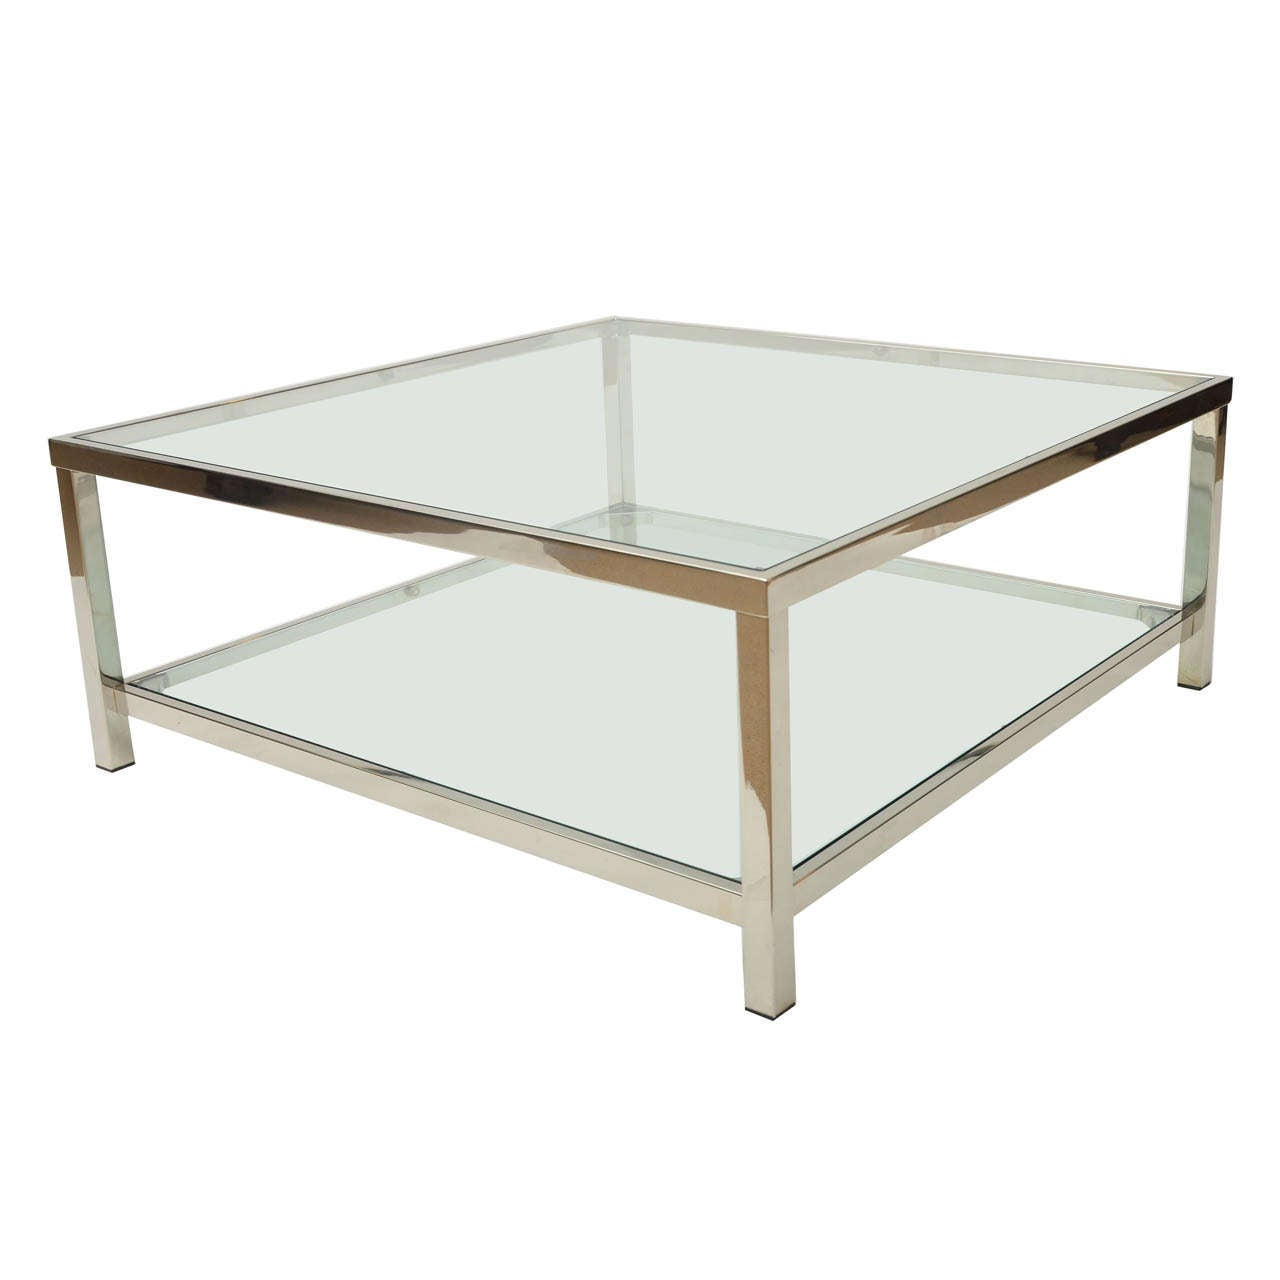 Superieur Chrome And Glass Square Coffee Table For Sale